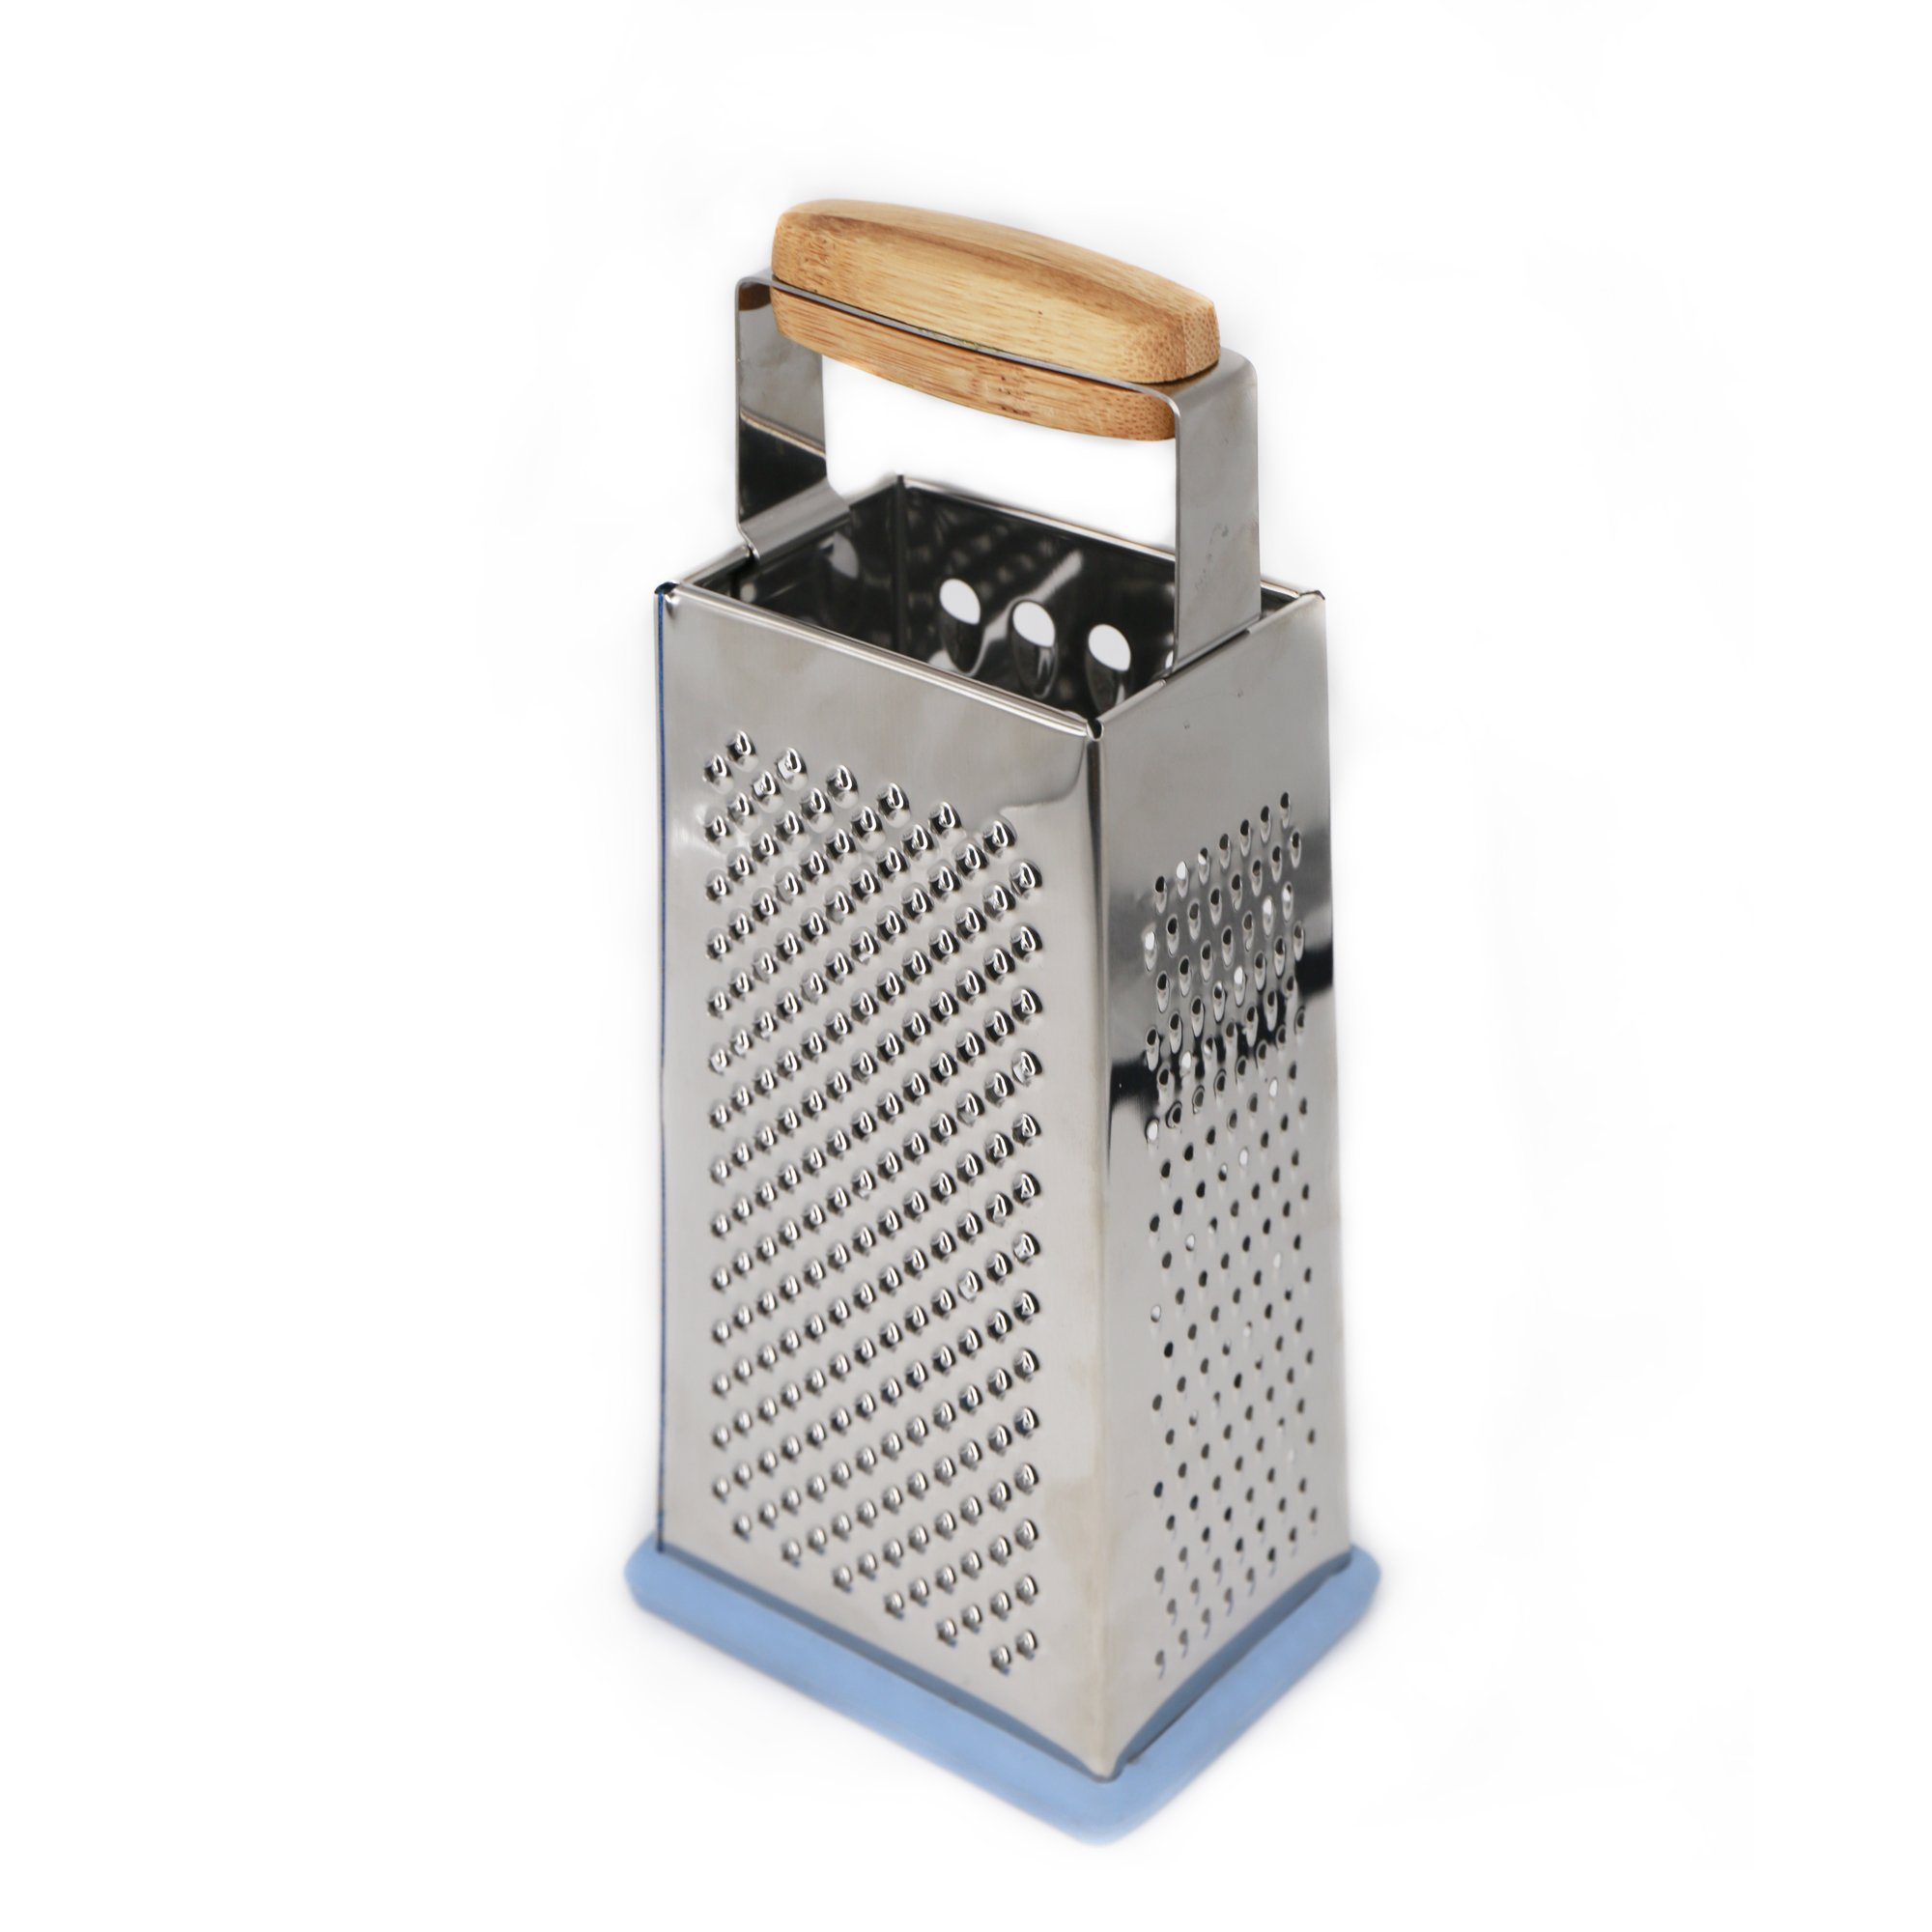 Tessïe & Jessïe Box Grater –4-Sided Stainless Steel Professional Grater with Bamboo Handle for Cheese, Vegetables, Ginger … - Sky-Blue/Plum-Red (Sky-Blue)